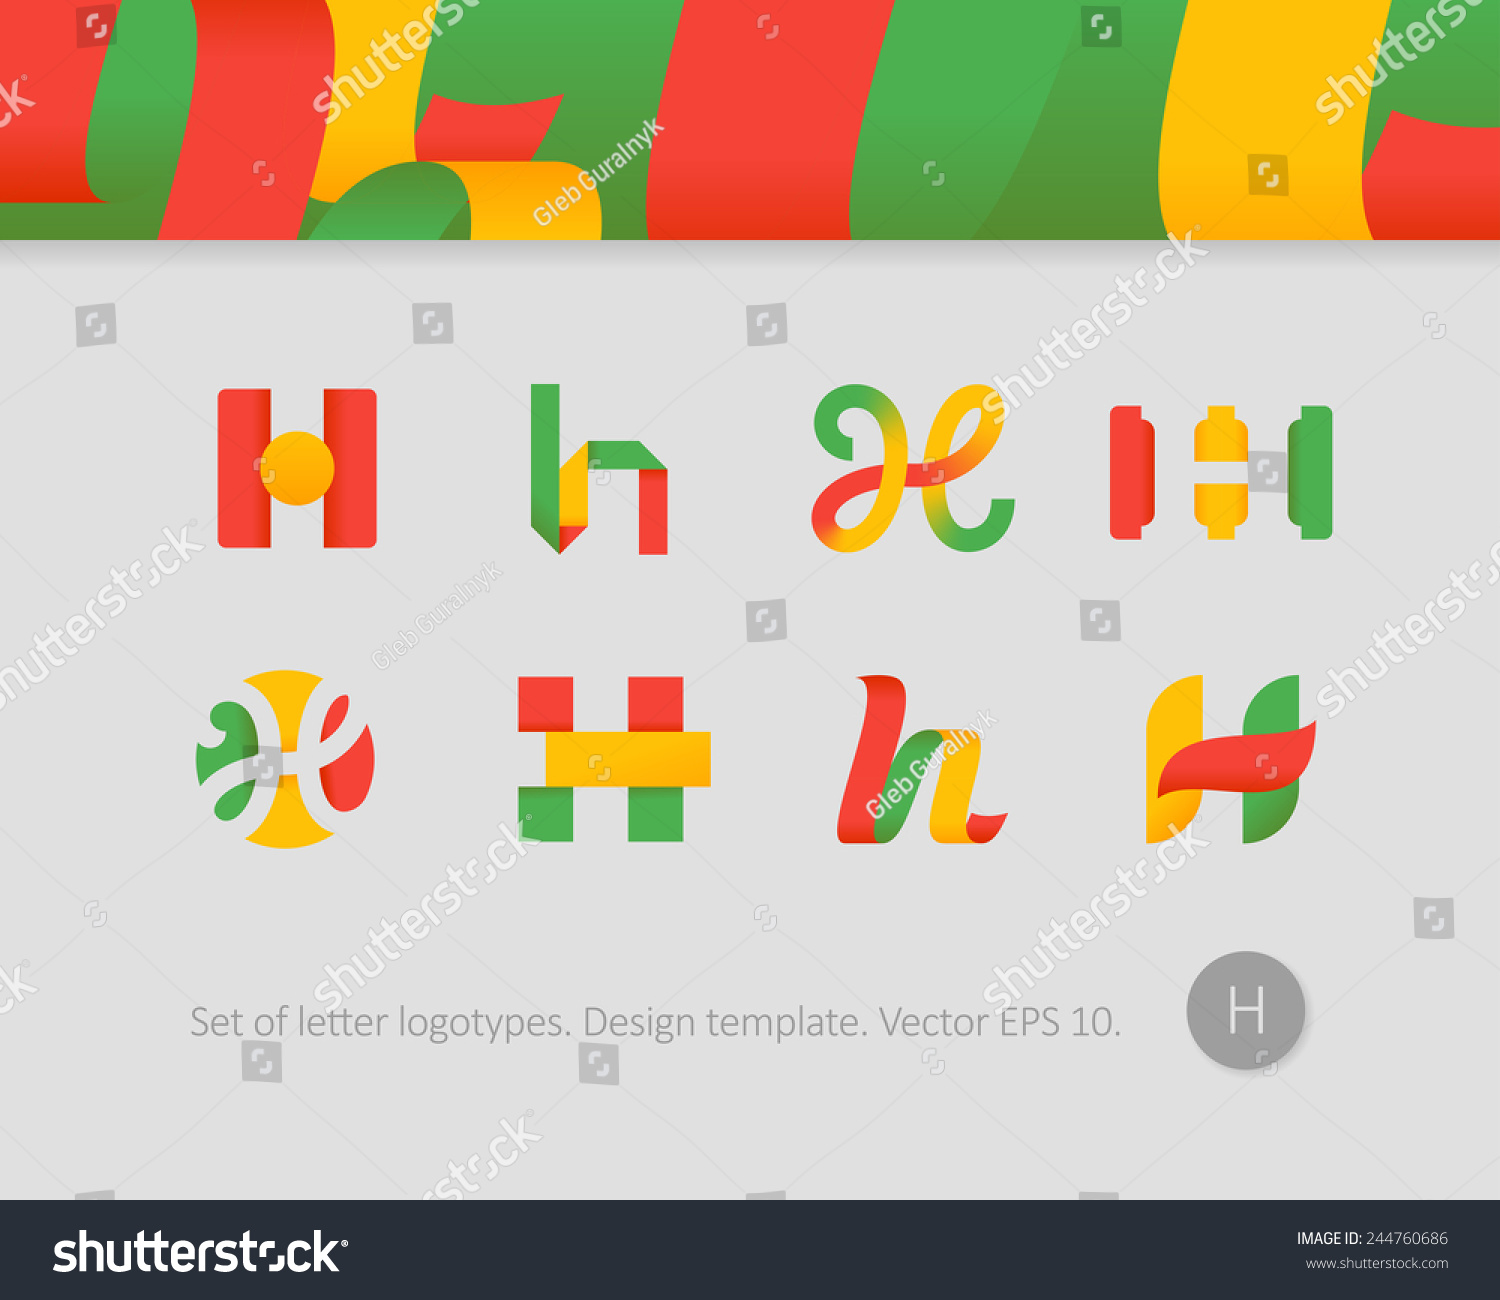 Logo design templates stylized letter h stock vector 244760686 logo design templates stylized letter h stock vector 244760686 shutterstock spiritdancerdesigns Image collections